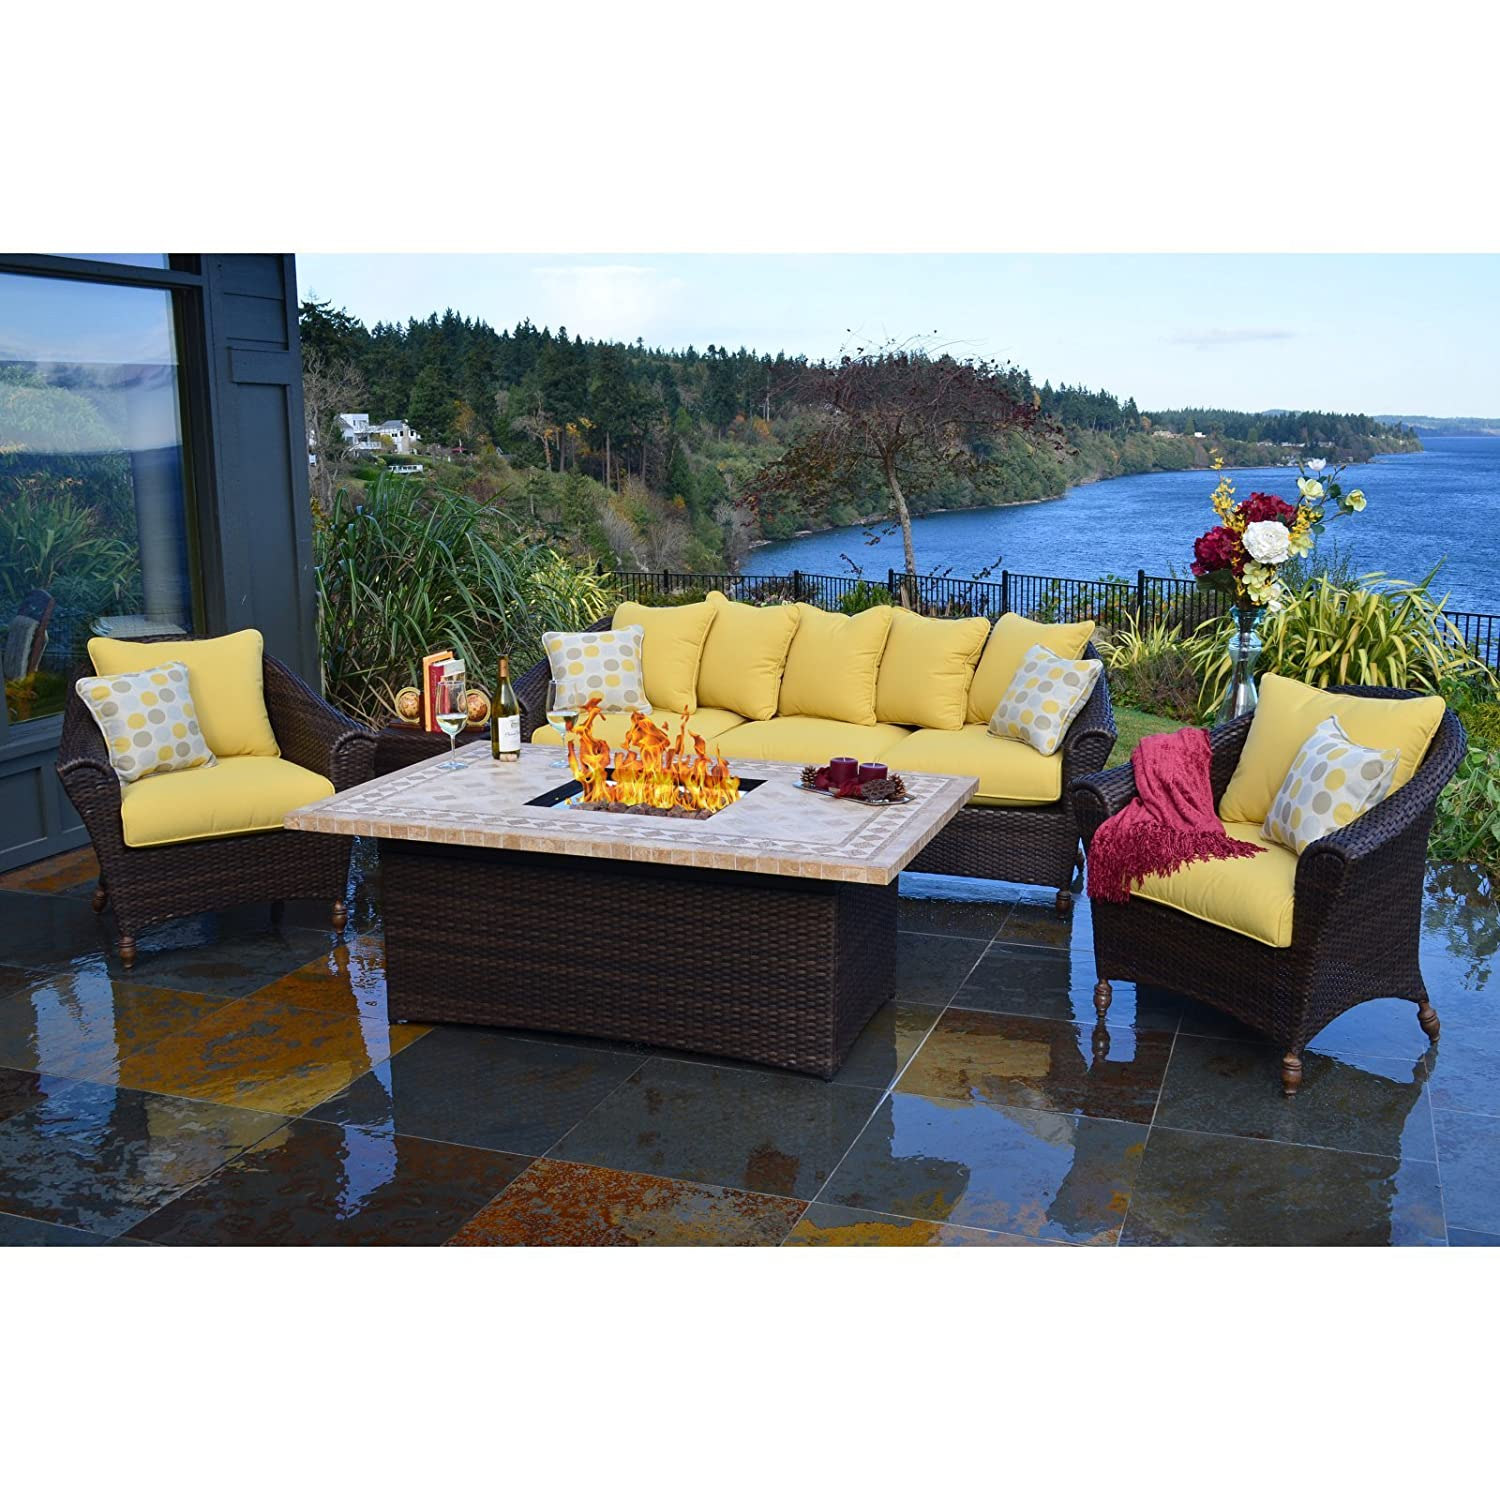 Wonderful Outdoor Innovations Bellamar 6 Piece All Weather Wicker Patio Furniture Set